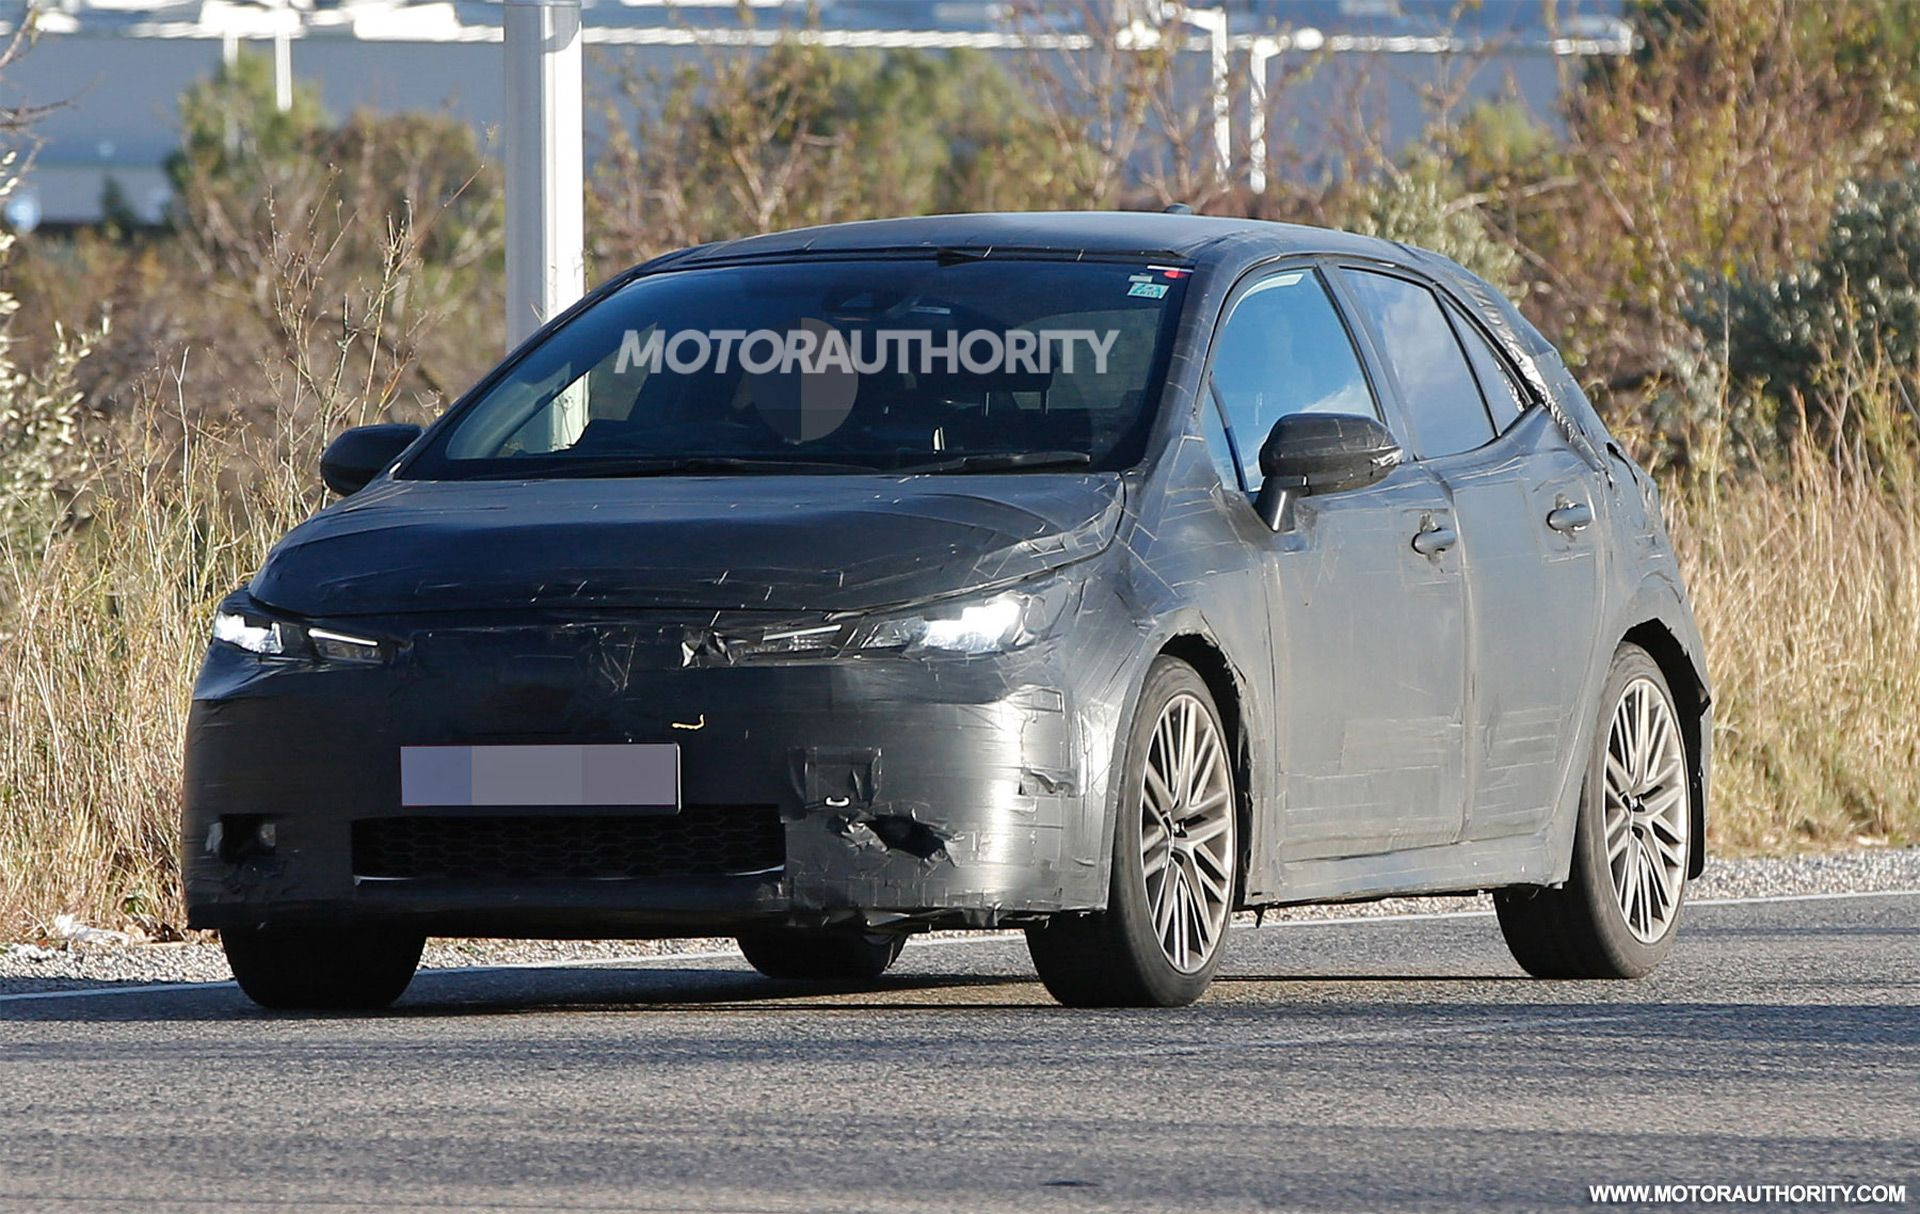 95 A 2020 New Toyota Avensis Spy Shots Price Design and Review